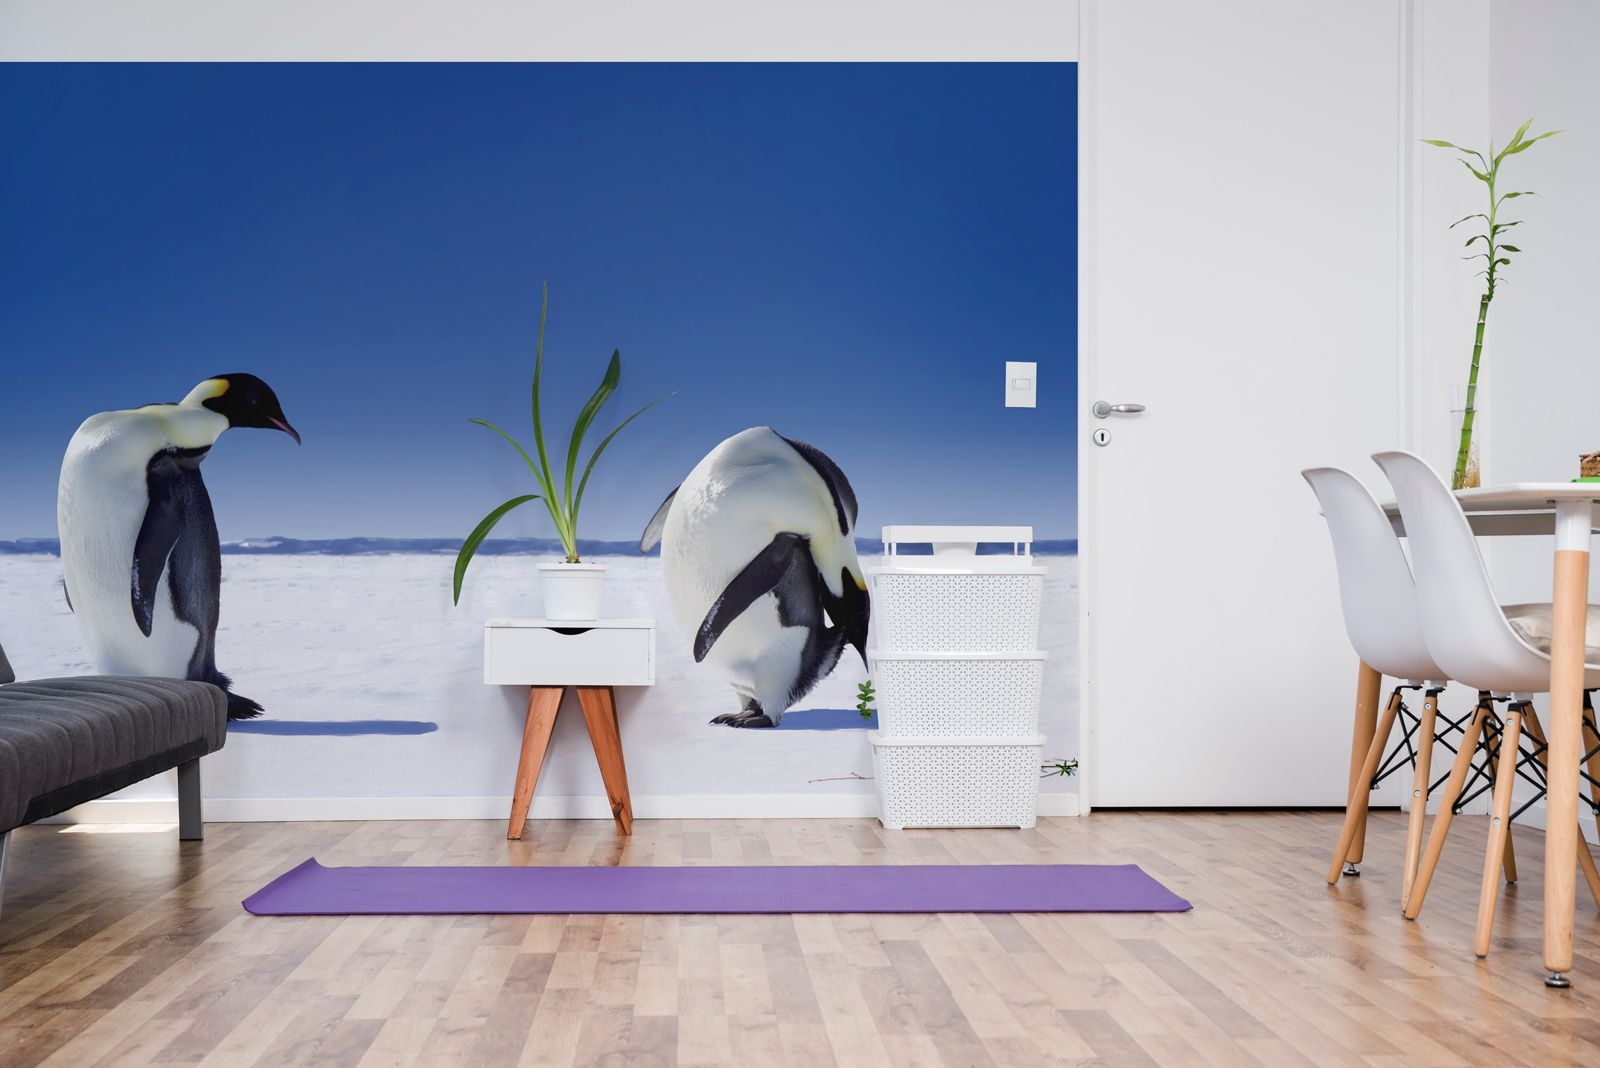 Penguins arctic animals wallpaper murals